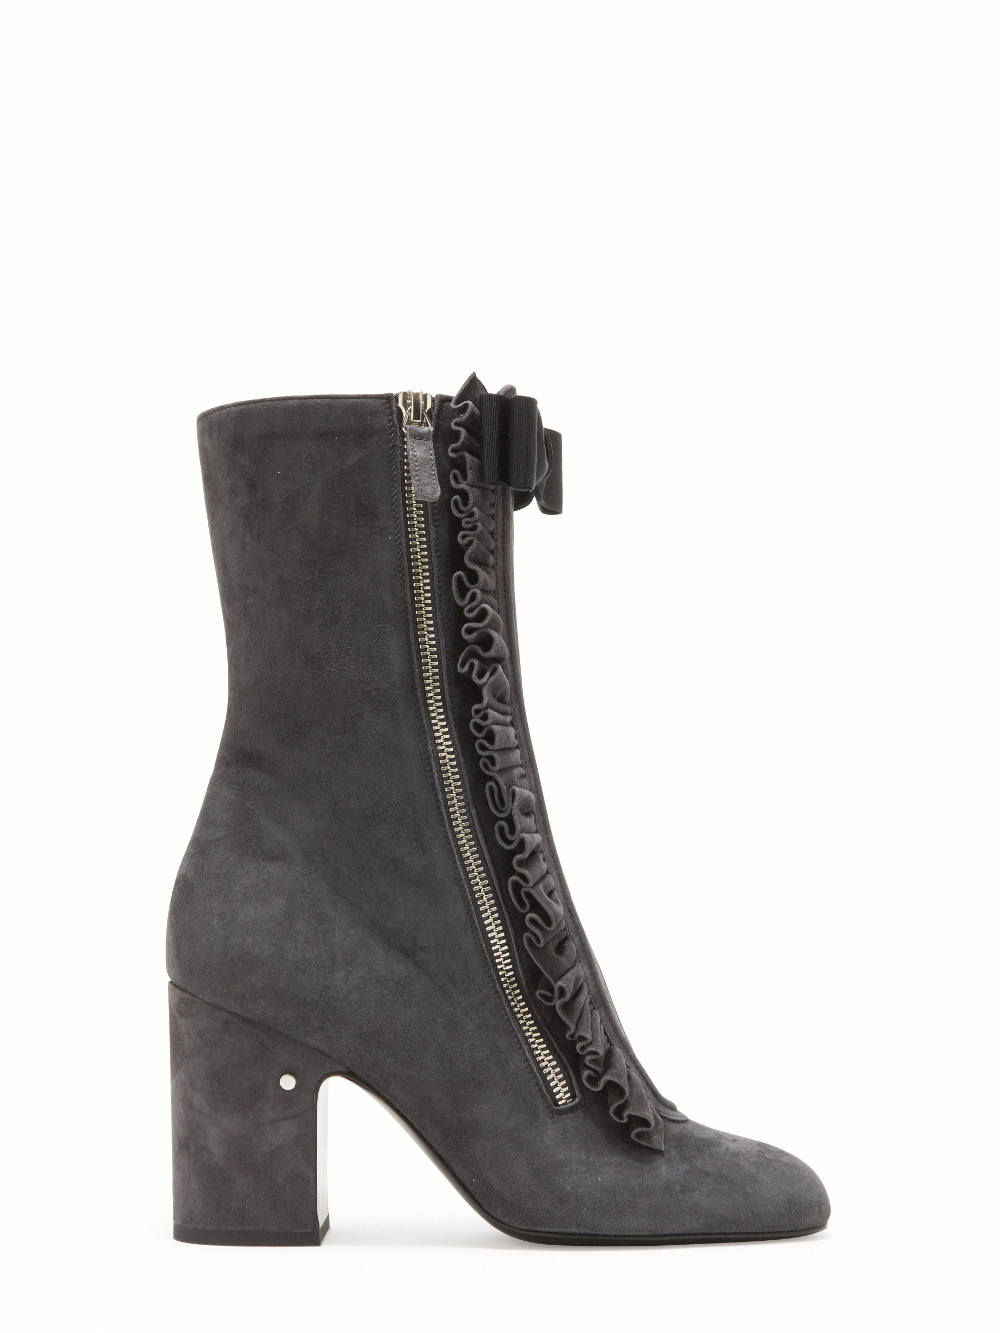 Bottines Patty - Laurence Dacade